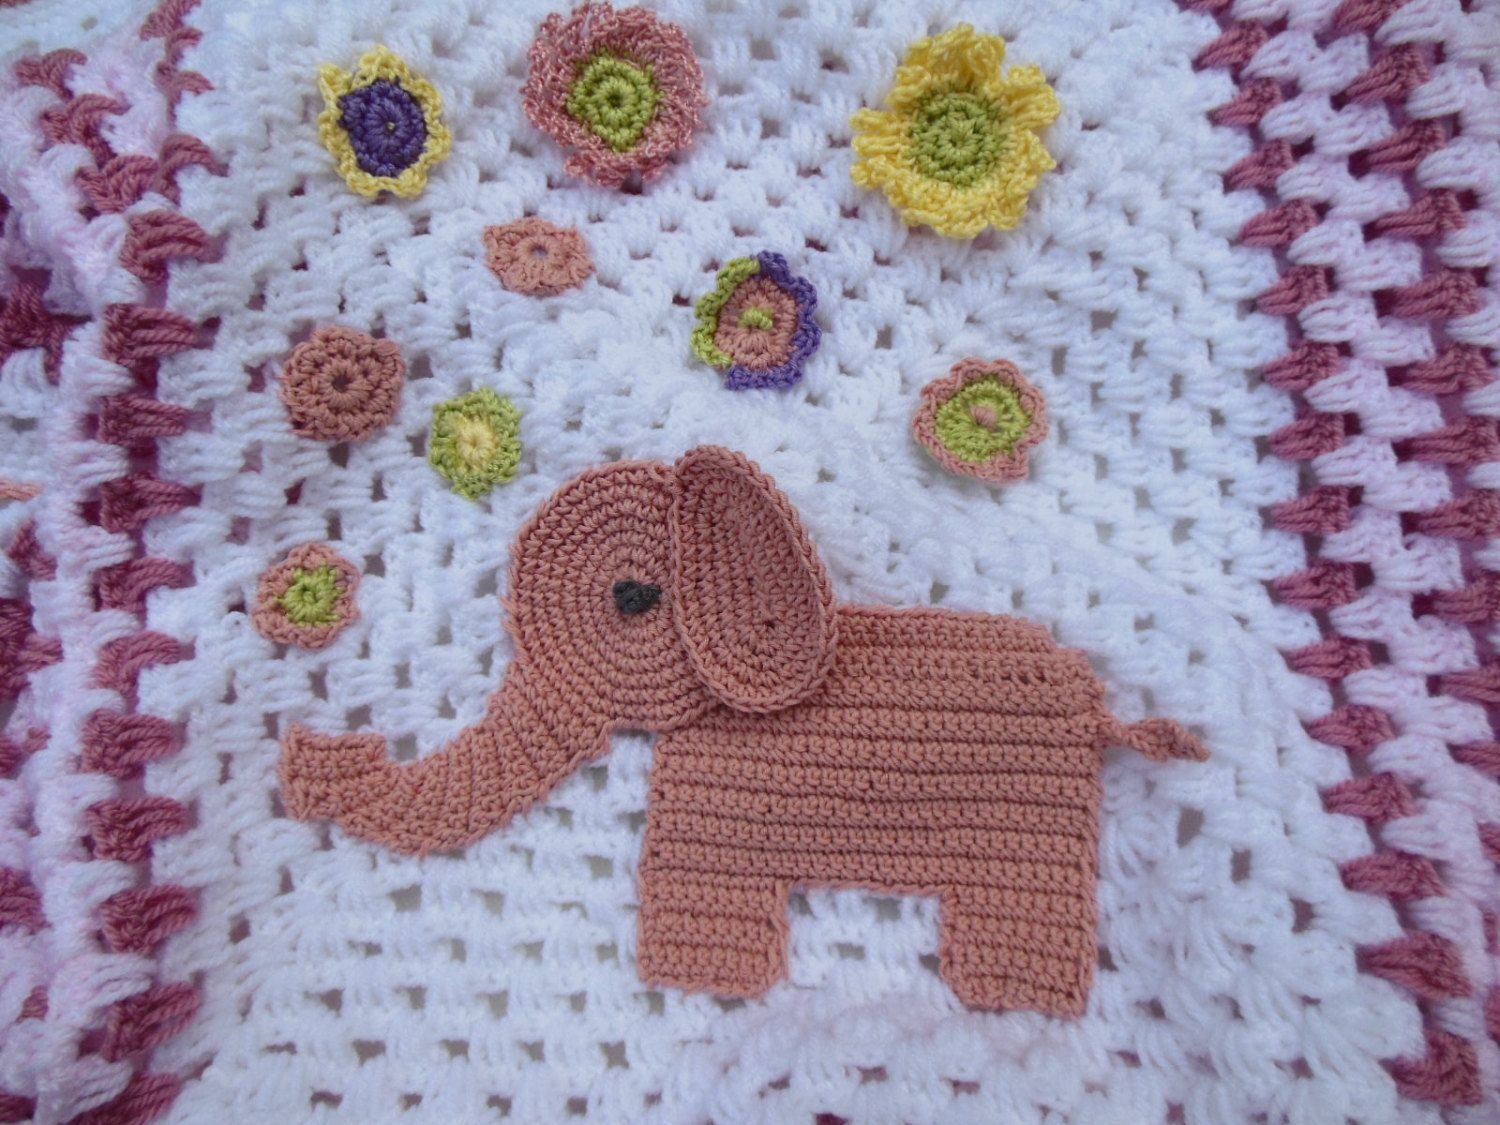 Crochet Baby Blanket with Crochet Elephant Applique Pink and White ...